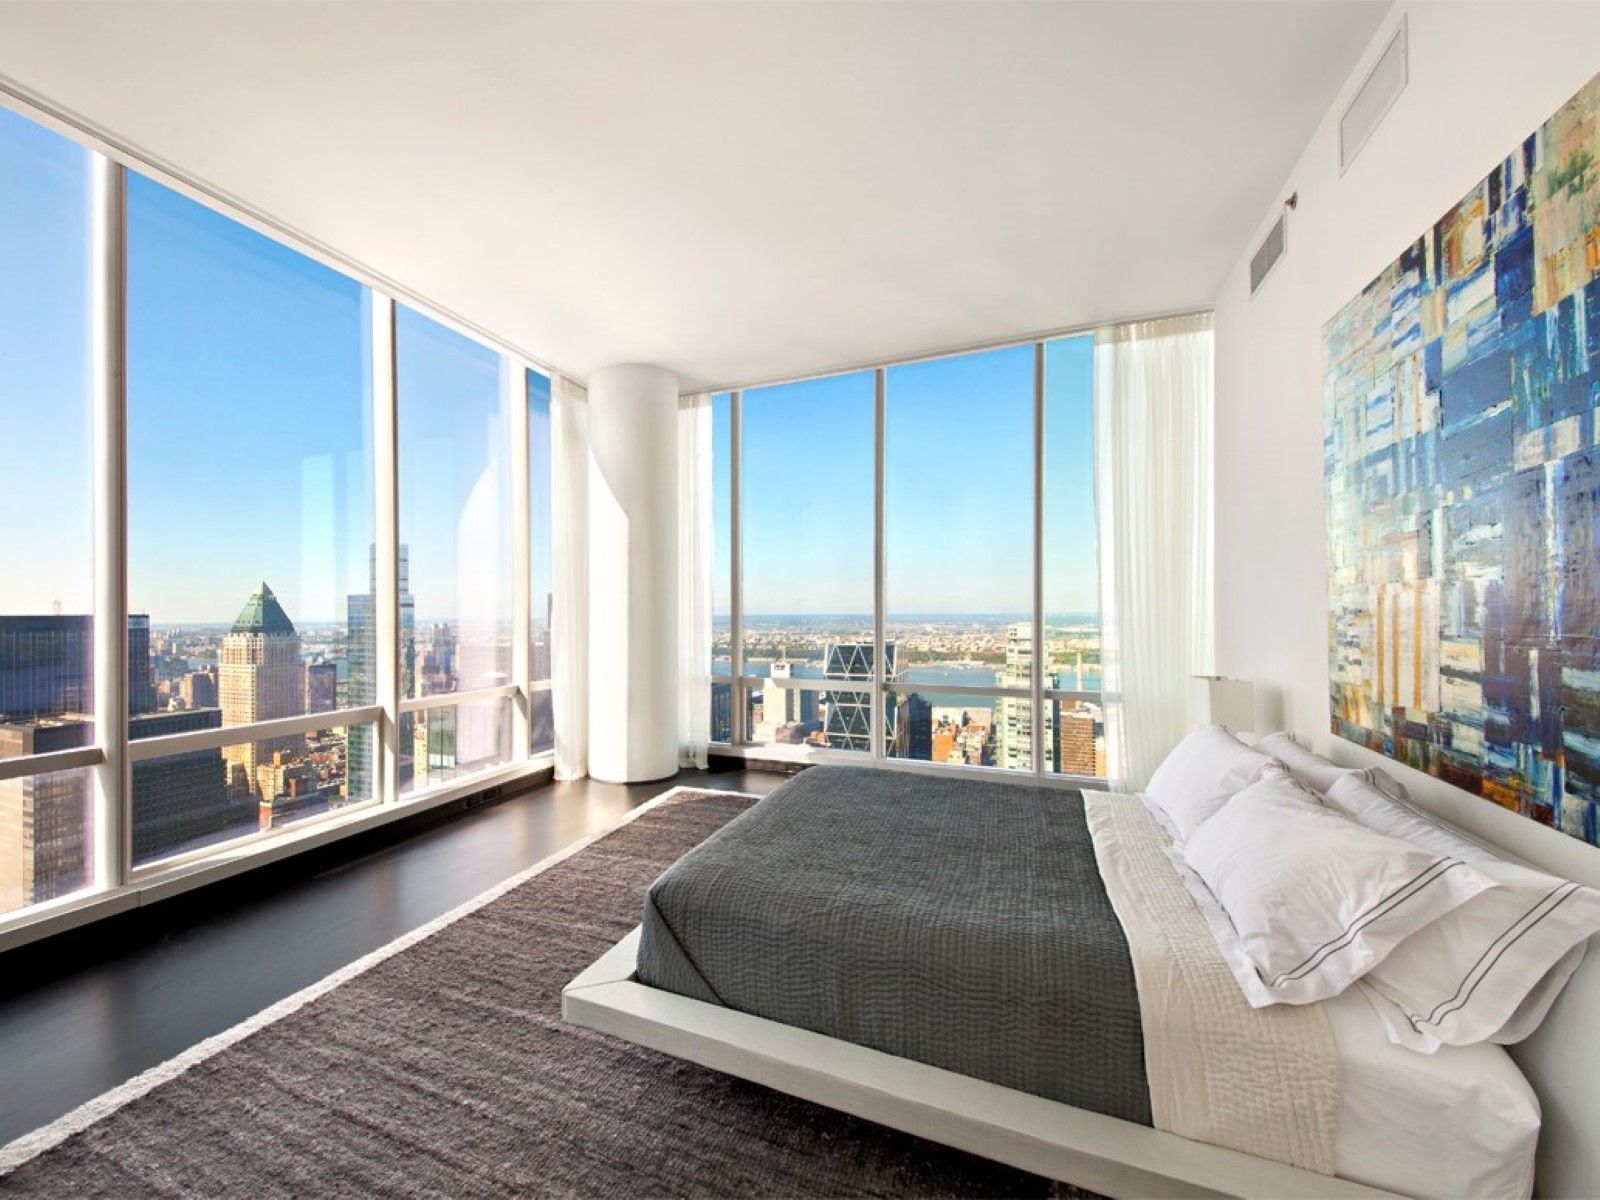 57 Linear Ft Overlooking Central Park Luxury homes